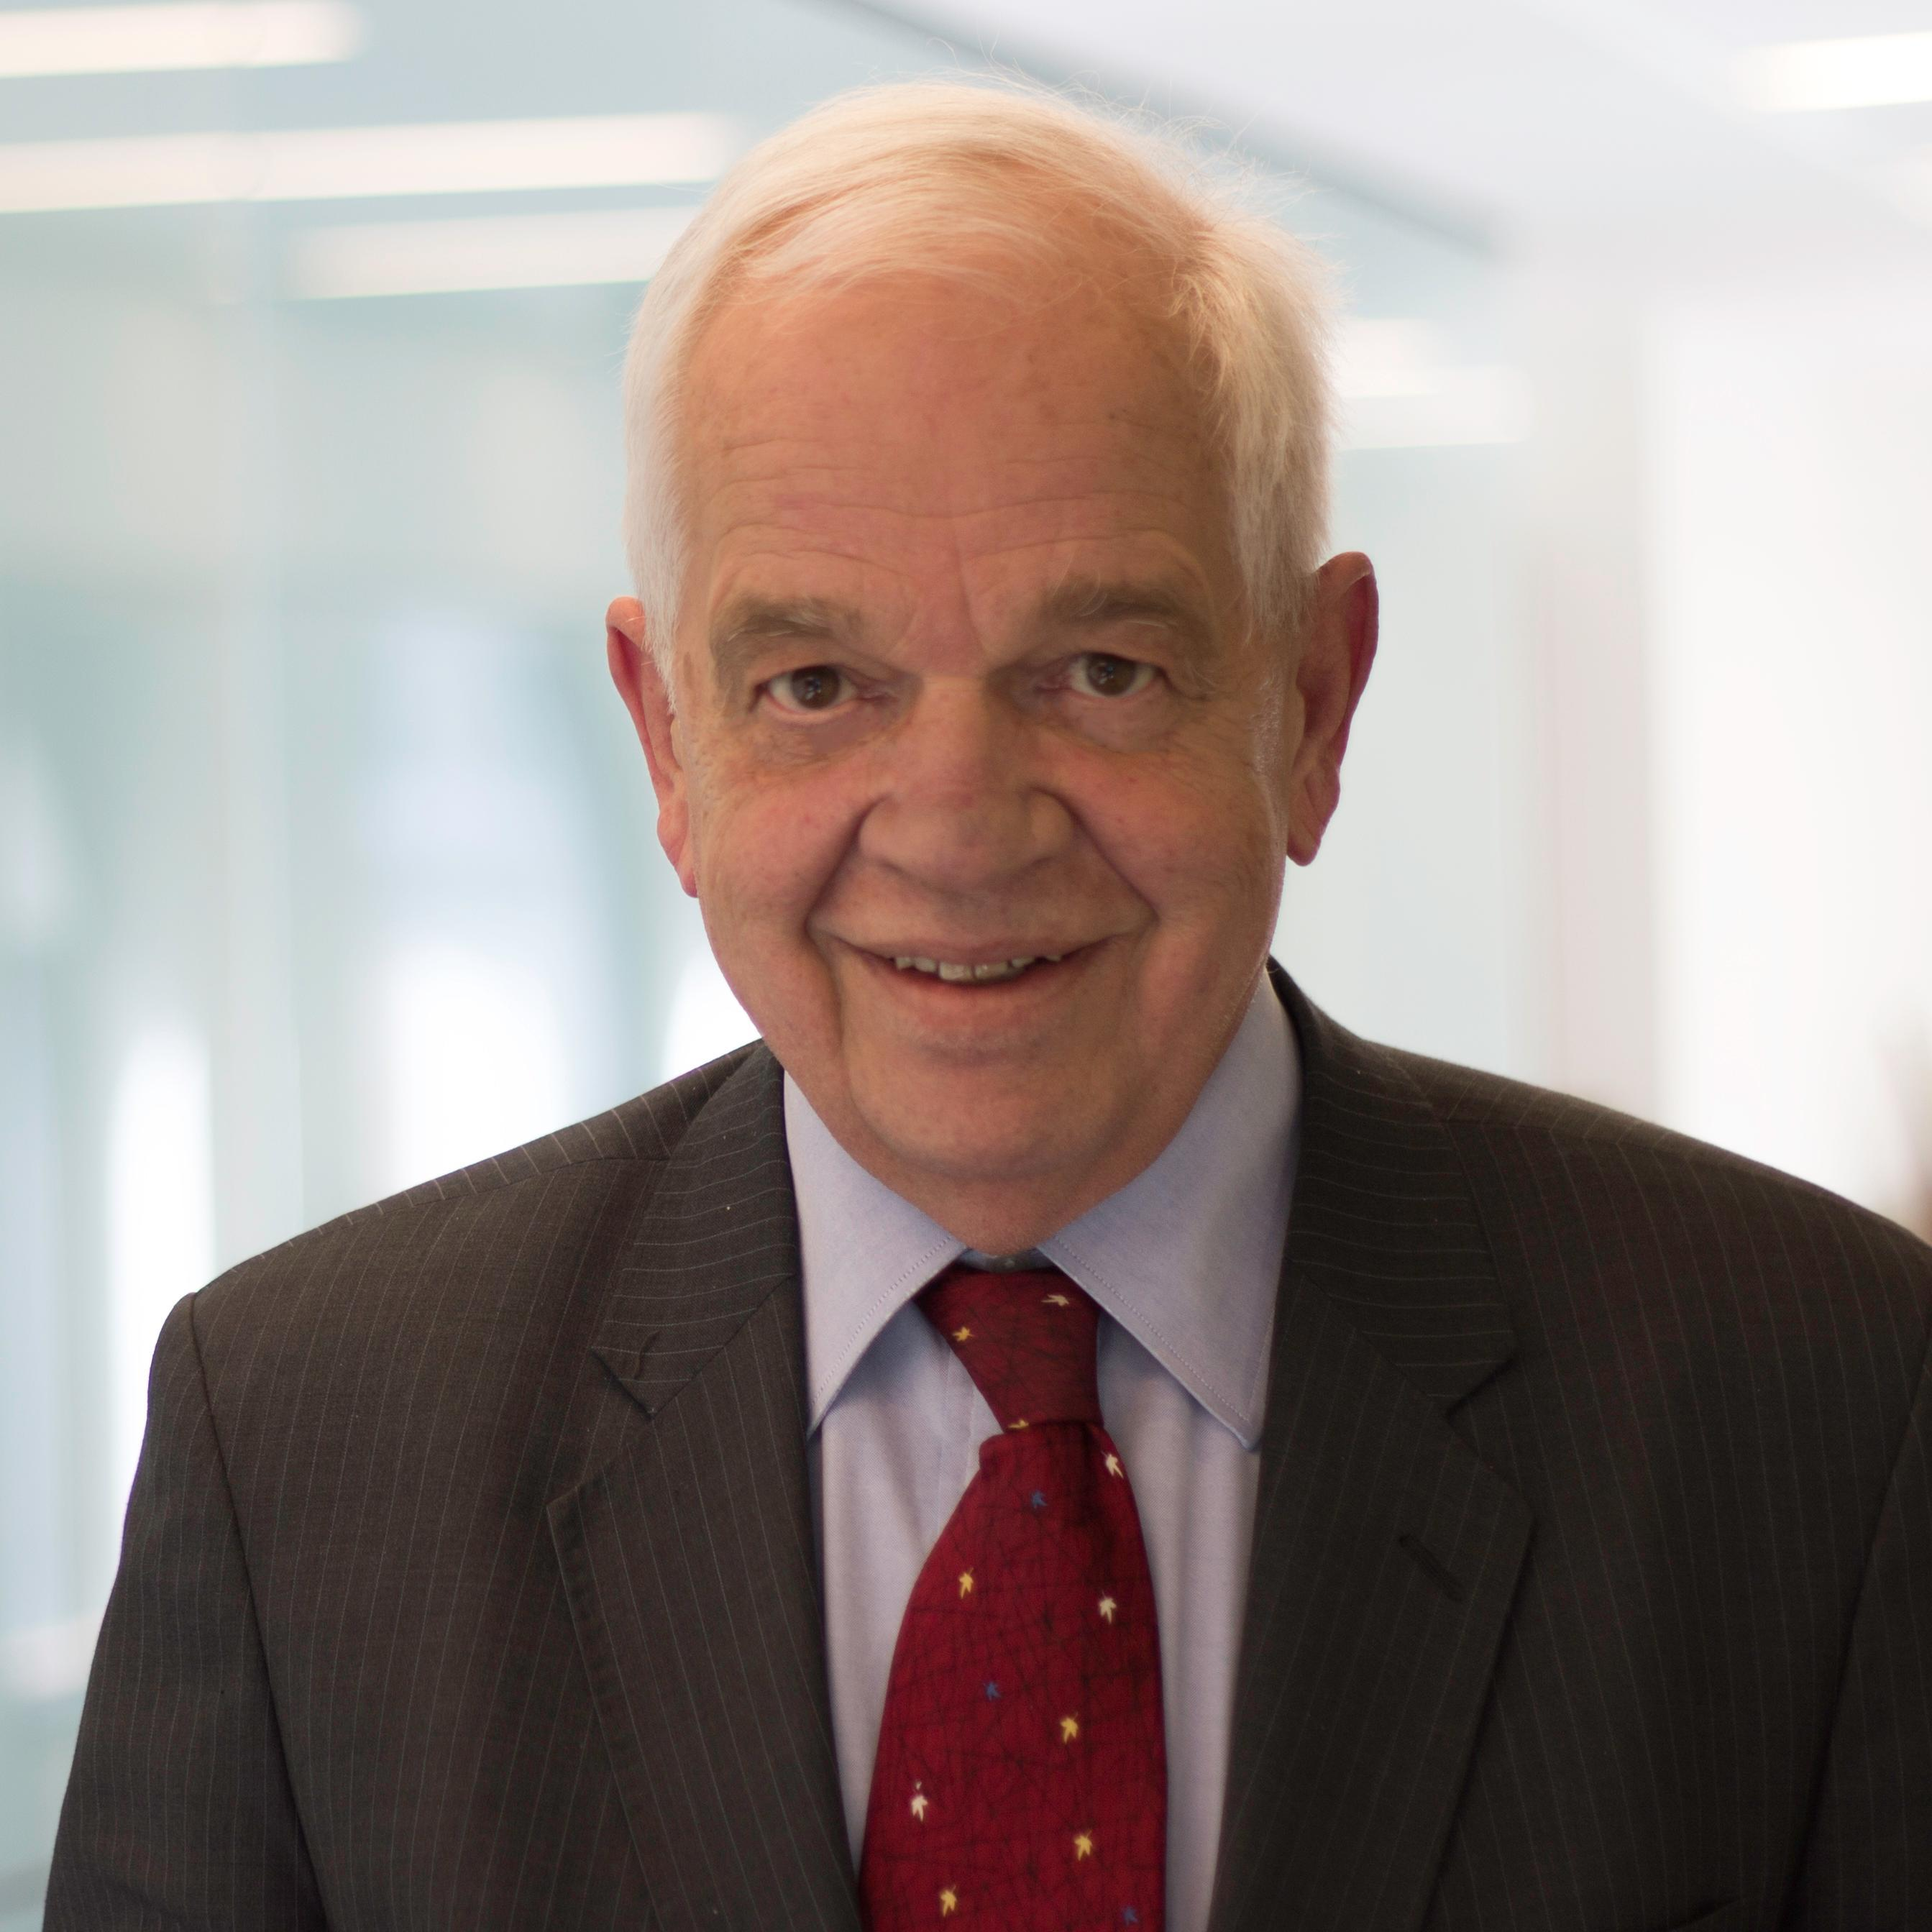 Federal Immigration Minister John McCallum (Photo from Minister John McCallum's official Twitter account)